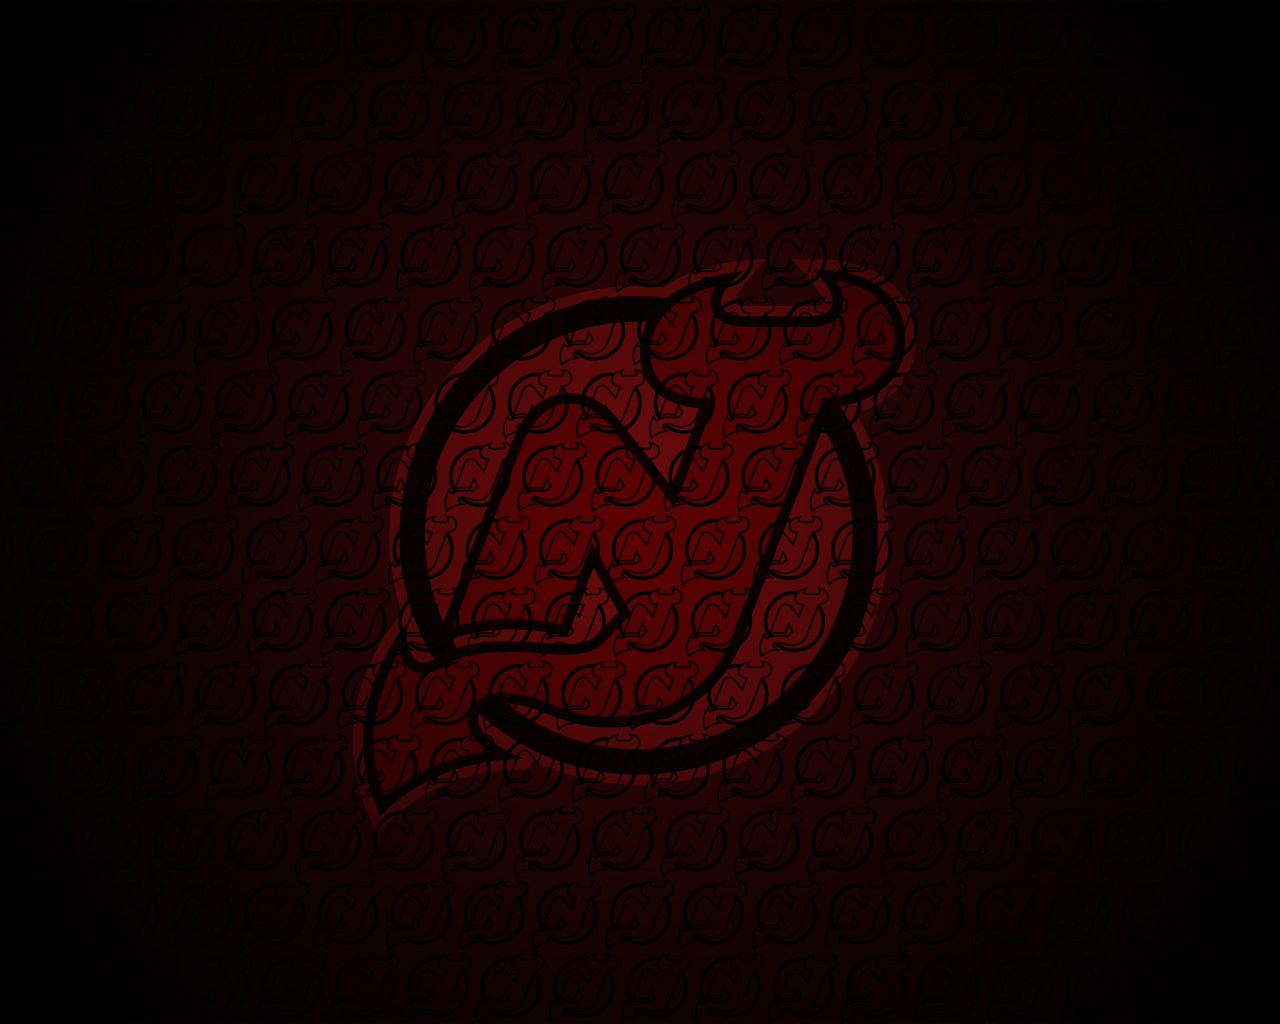 Free Download New Jersey Devils Wallpapers New Jersey Devils